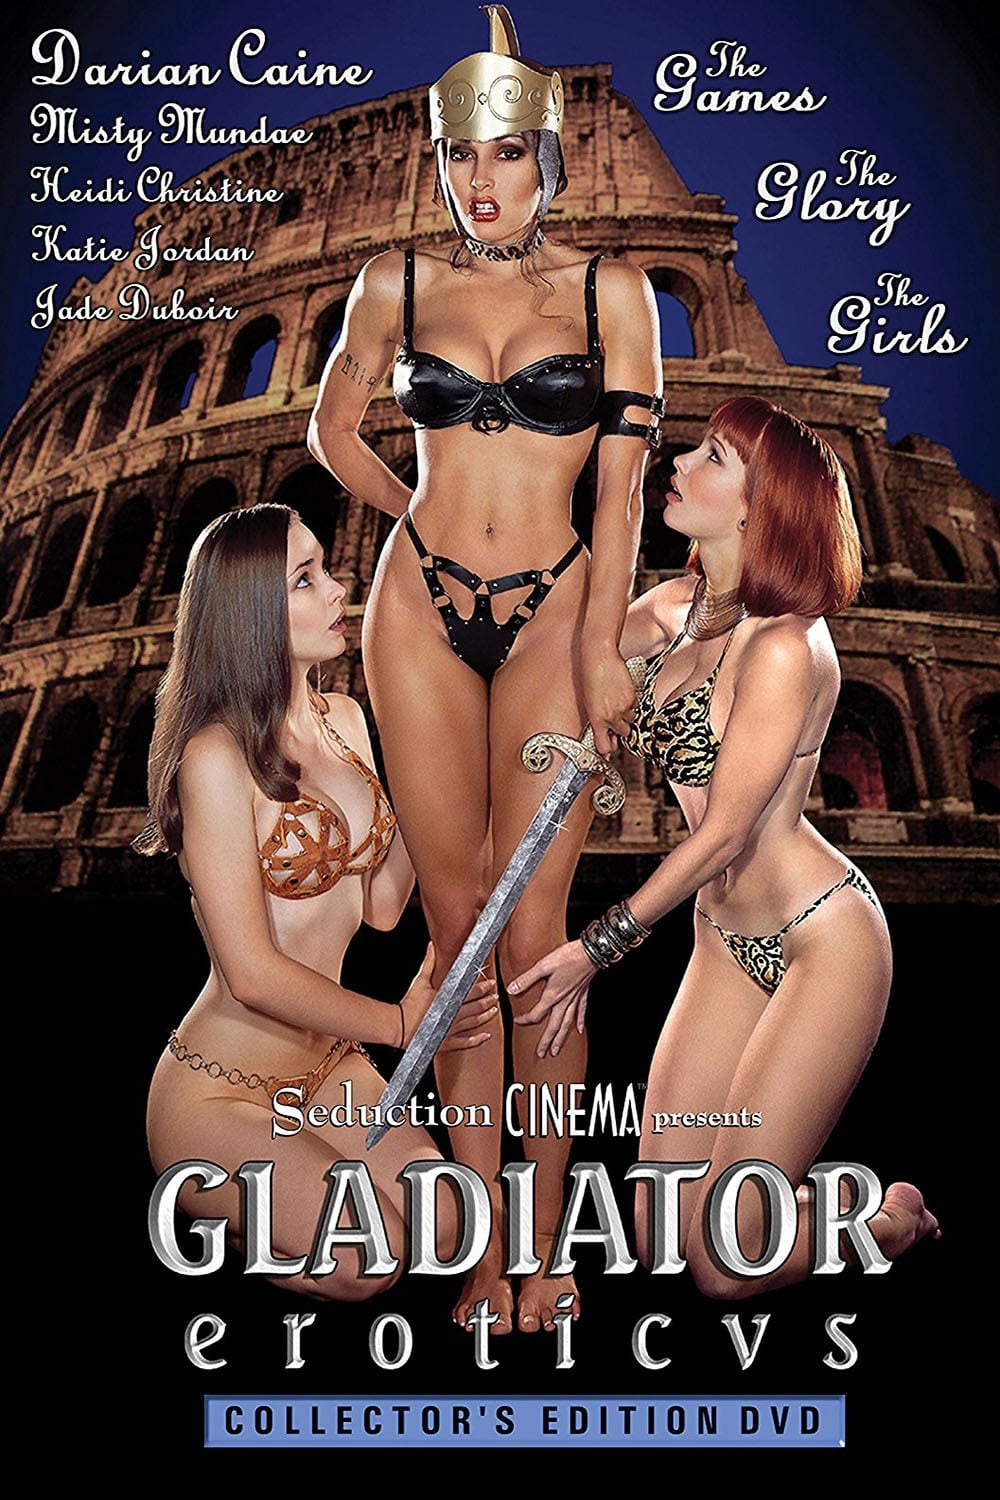 Gladiator Eroticvs: The Lesbian Warriors (2001)